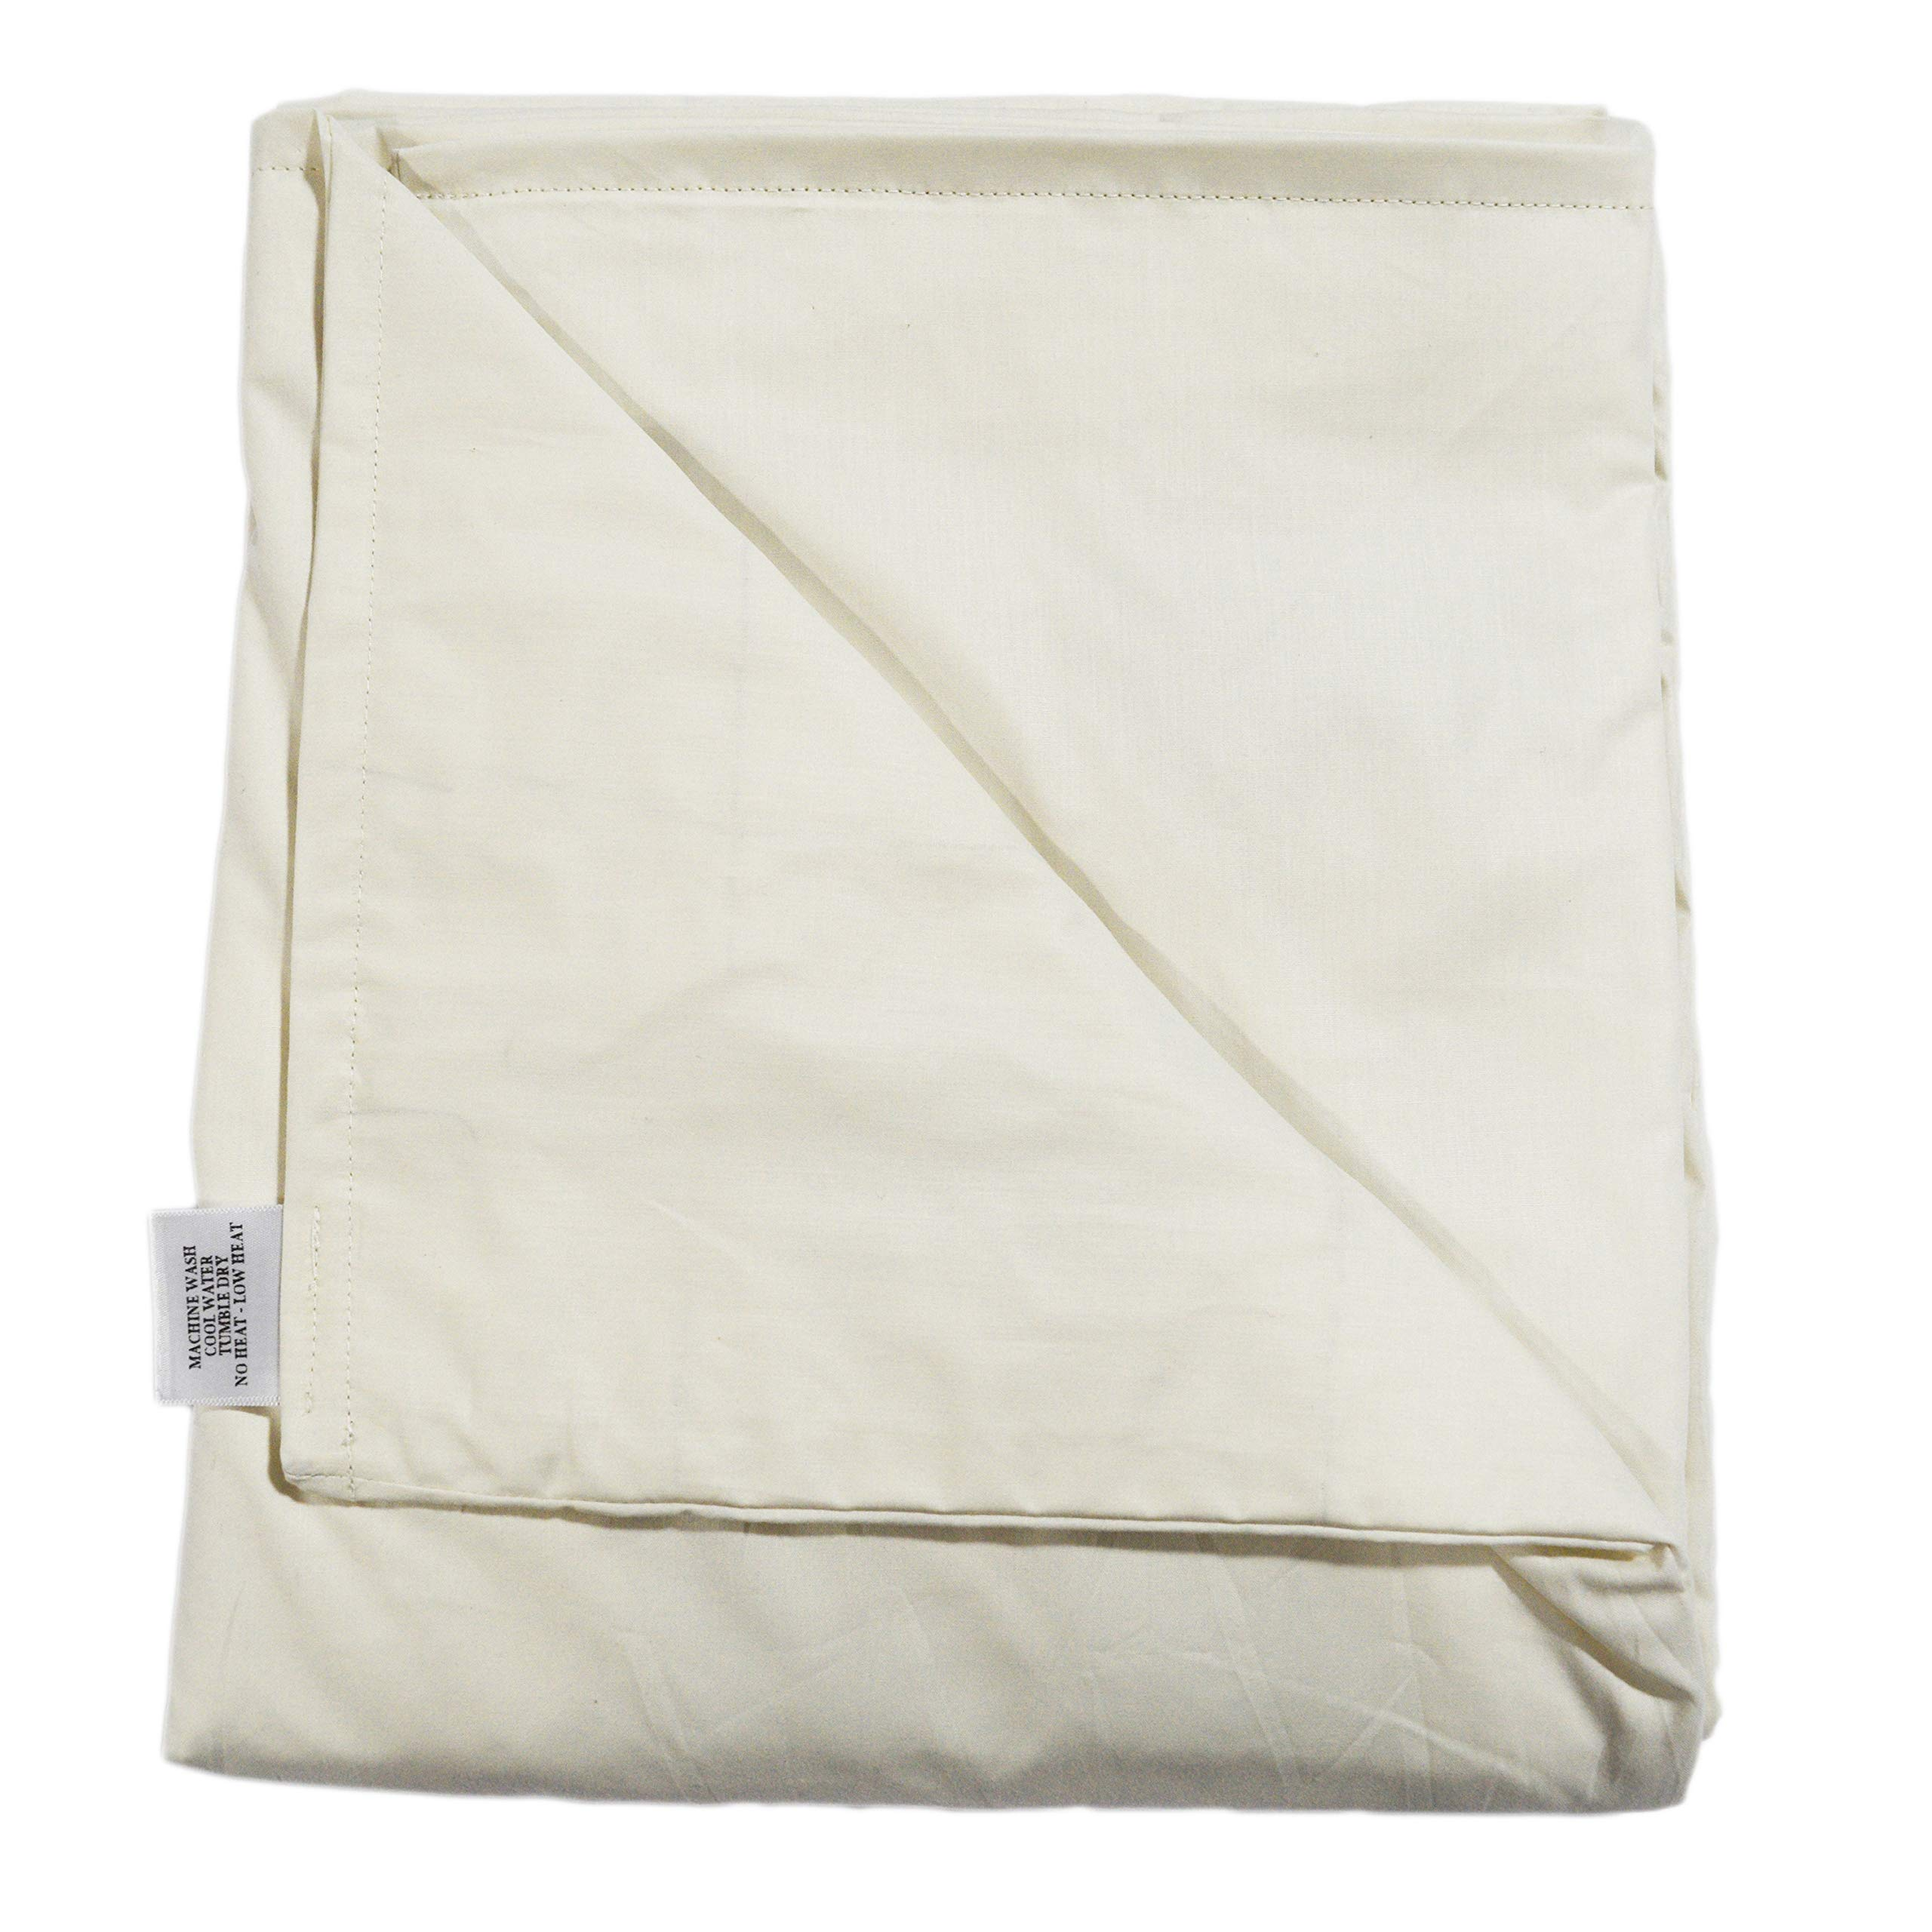 SENSORY GOODS Child Small Weighted Blanket - MADE IN AMERICA - 6lb Medium Pressure - Cream - 100% Organic (52'' x 40'') Provides Comfort and Relaxation.